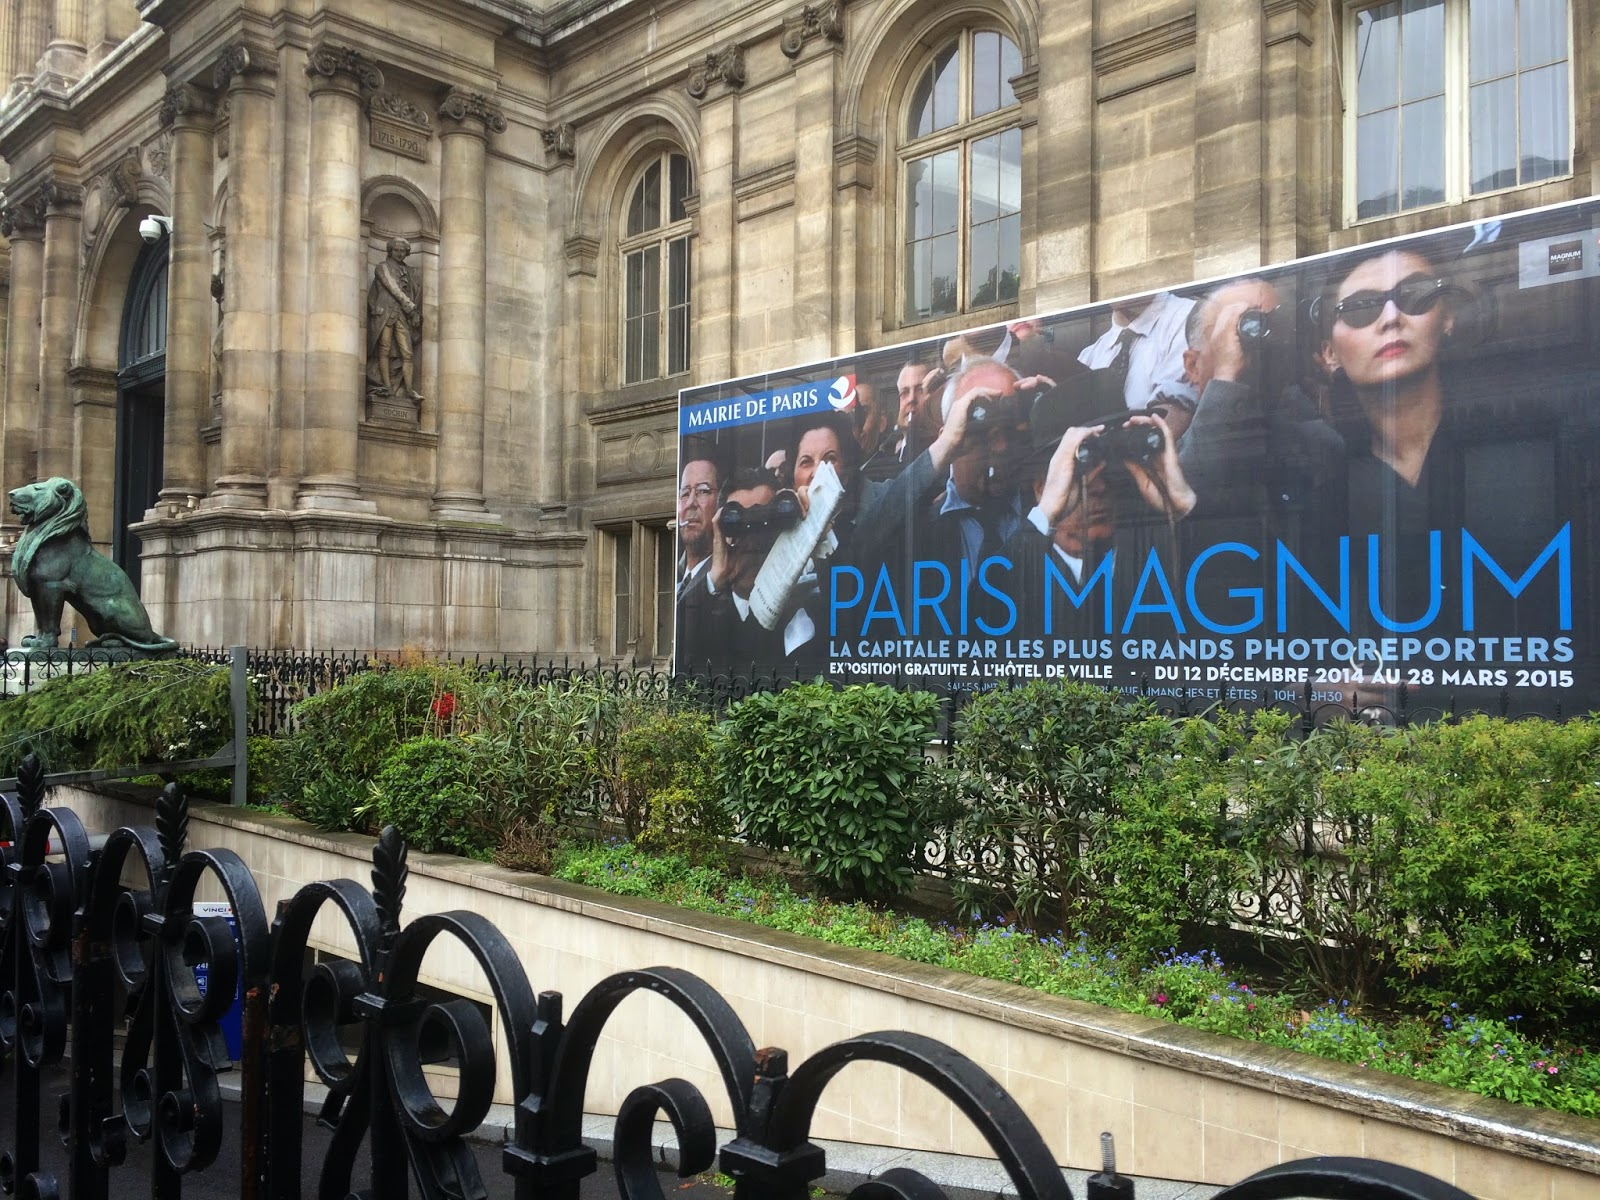 Exterior of the Paris Magnum exhibition, Paris